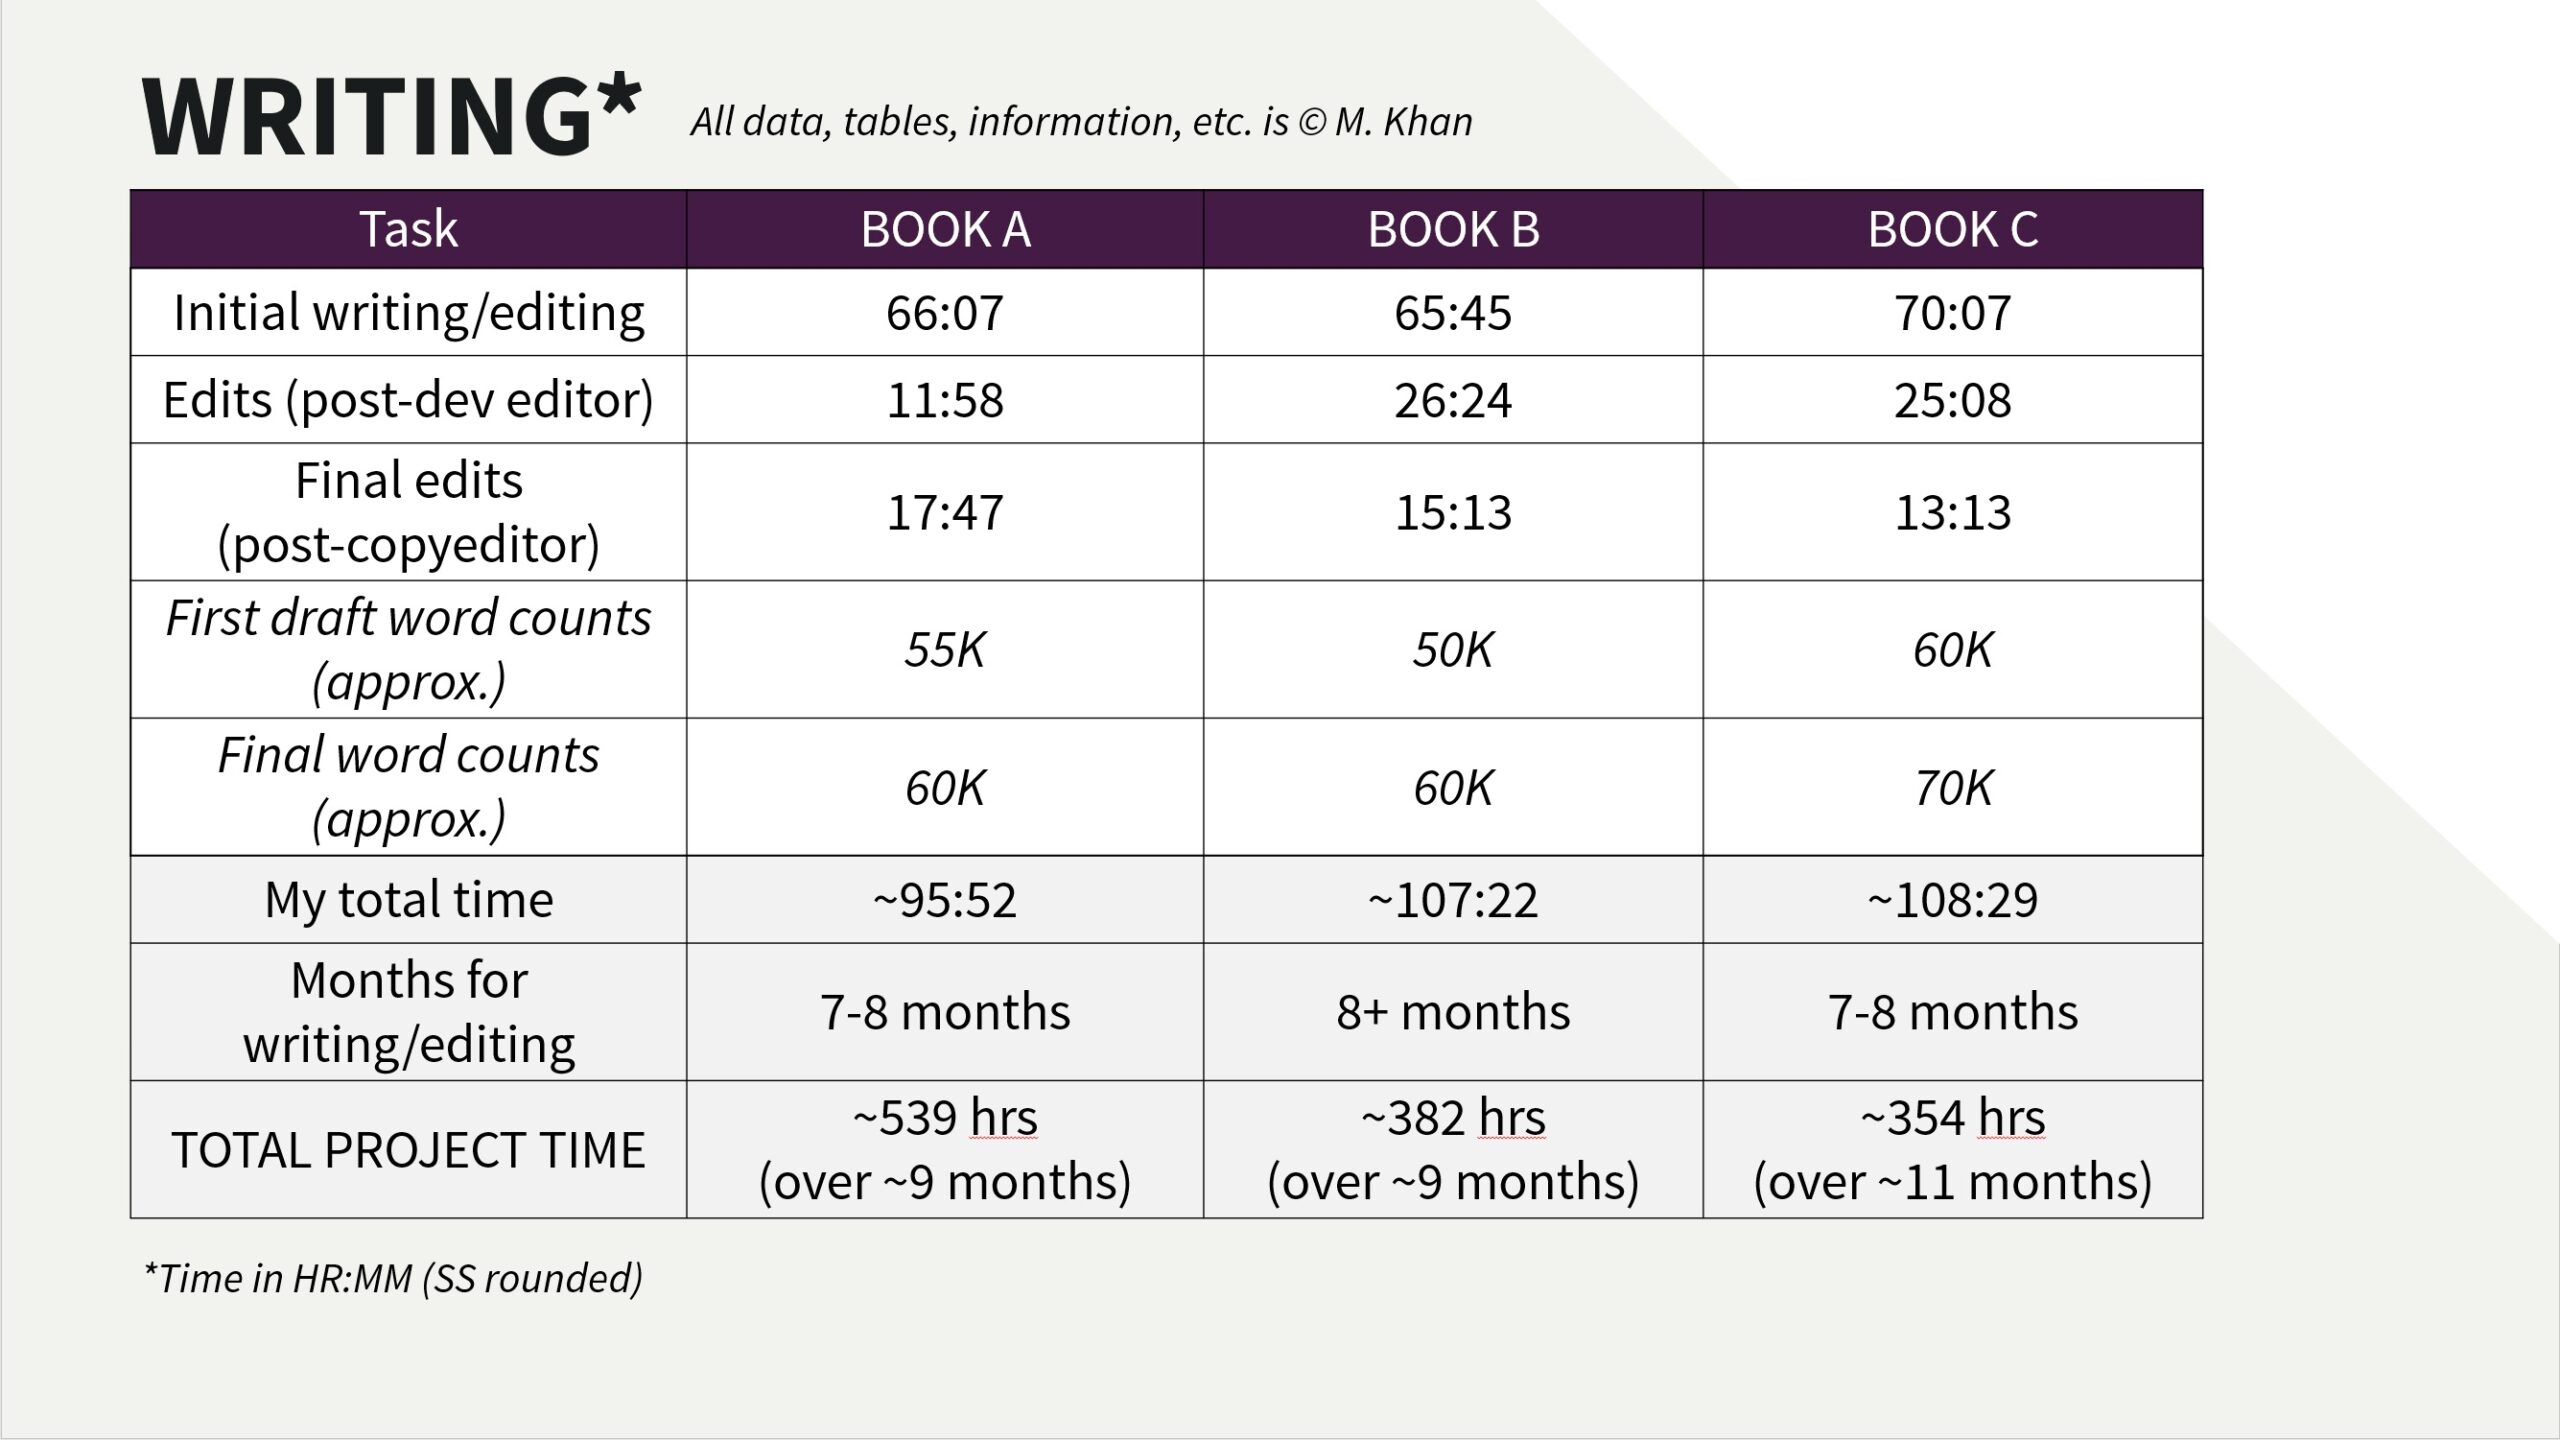 Breakdown of writing time across 3 books